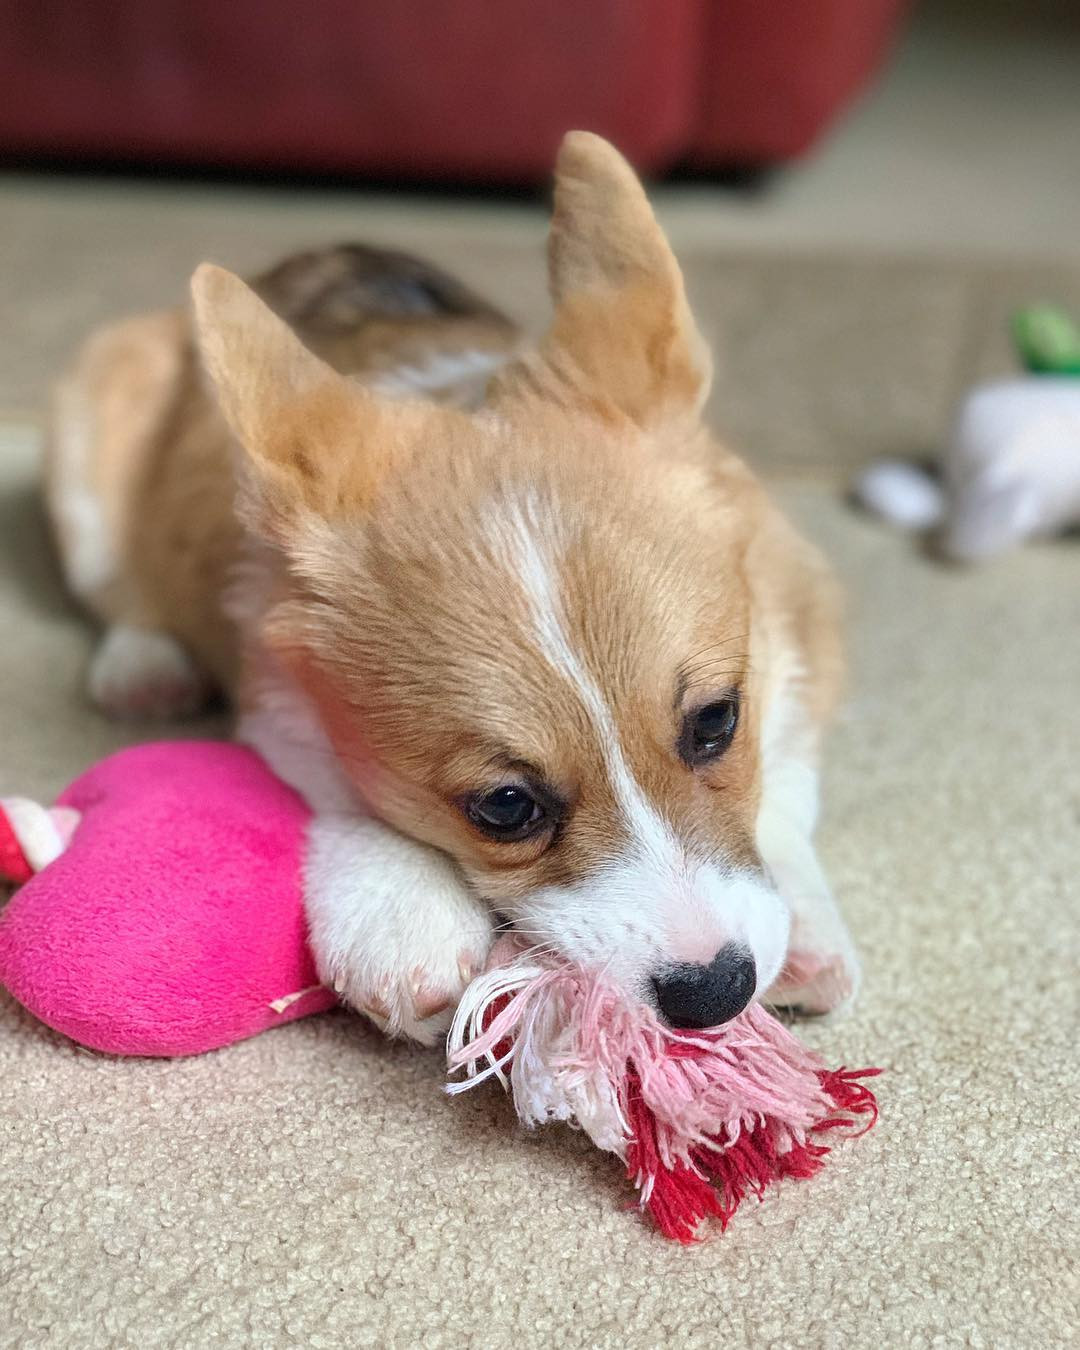 Corgi Puppies For Sale In California : corgi, puppies, california, Pembroke, Welsh, Corgi, Puppies, Diego,, #293459